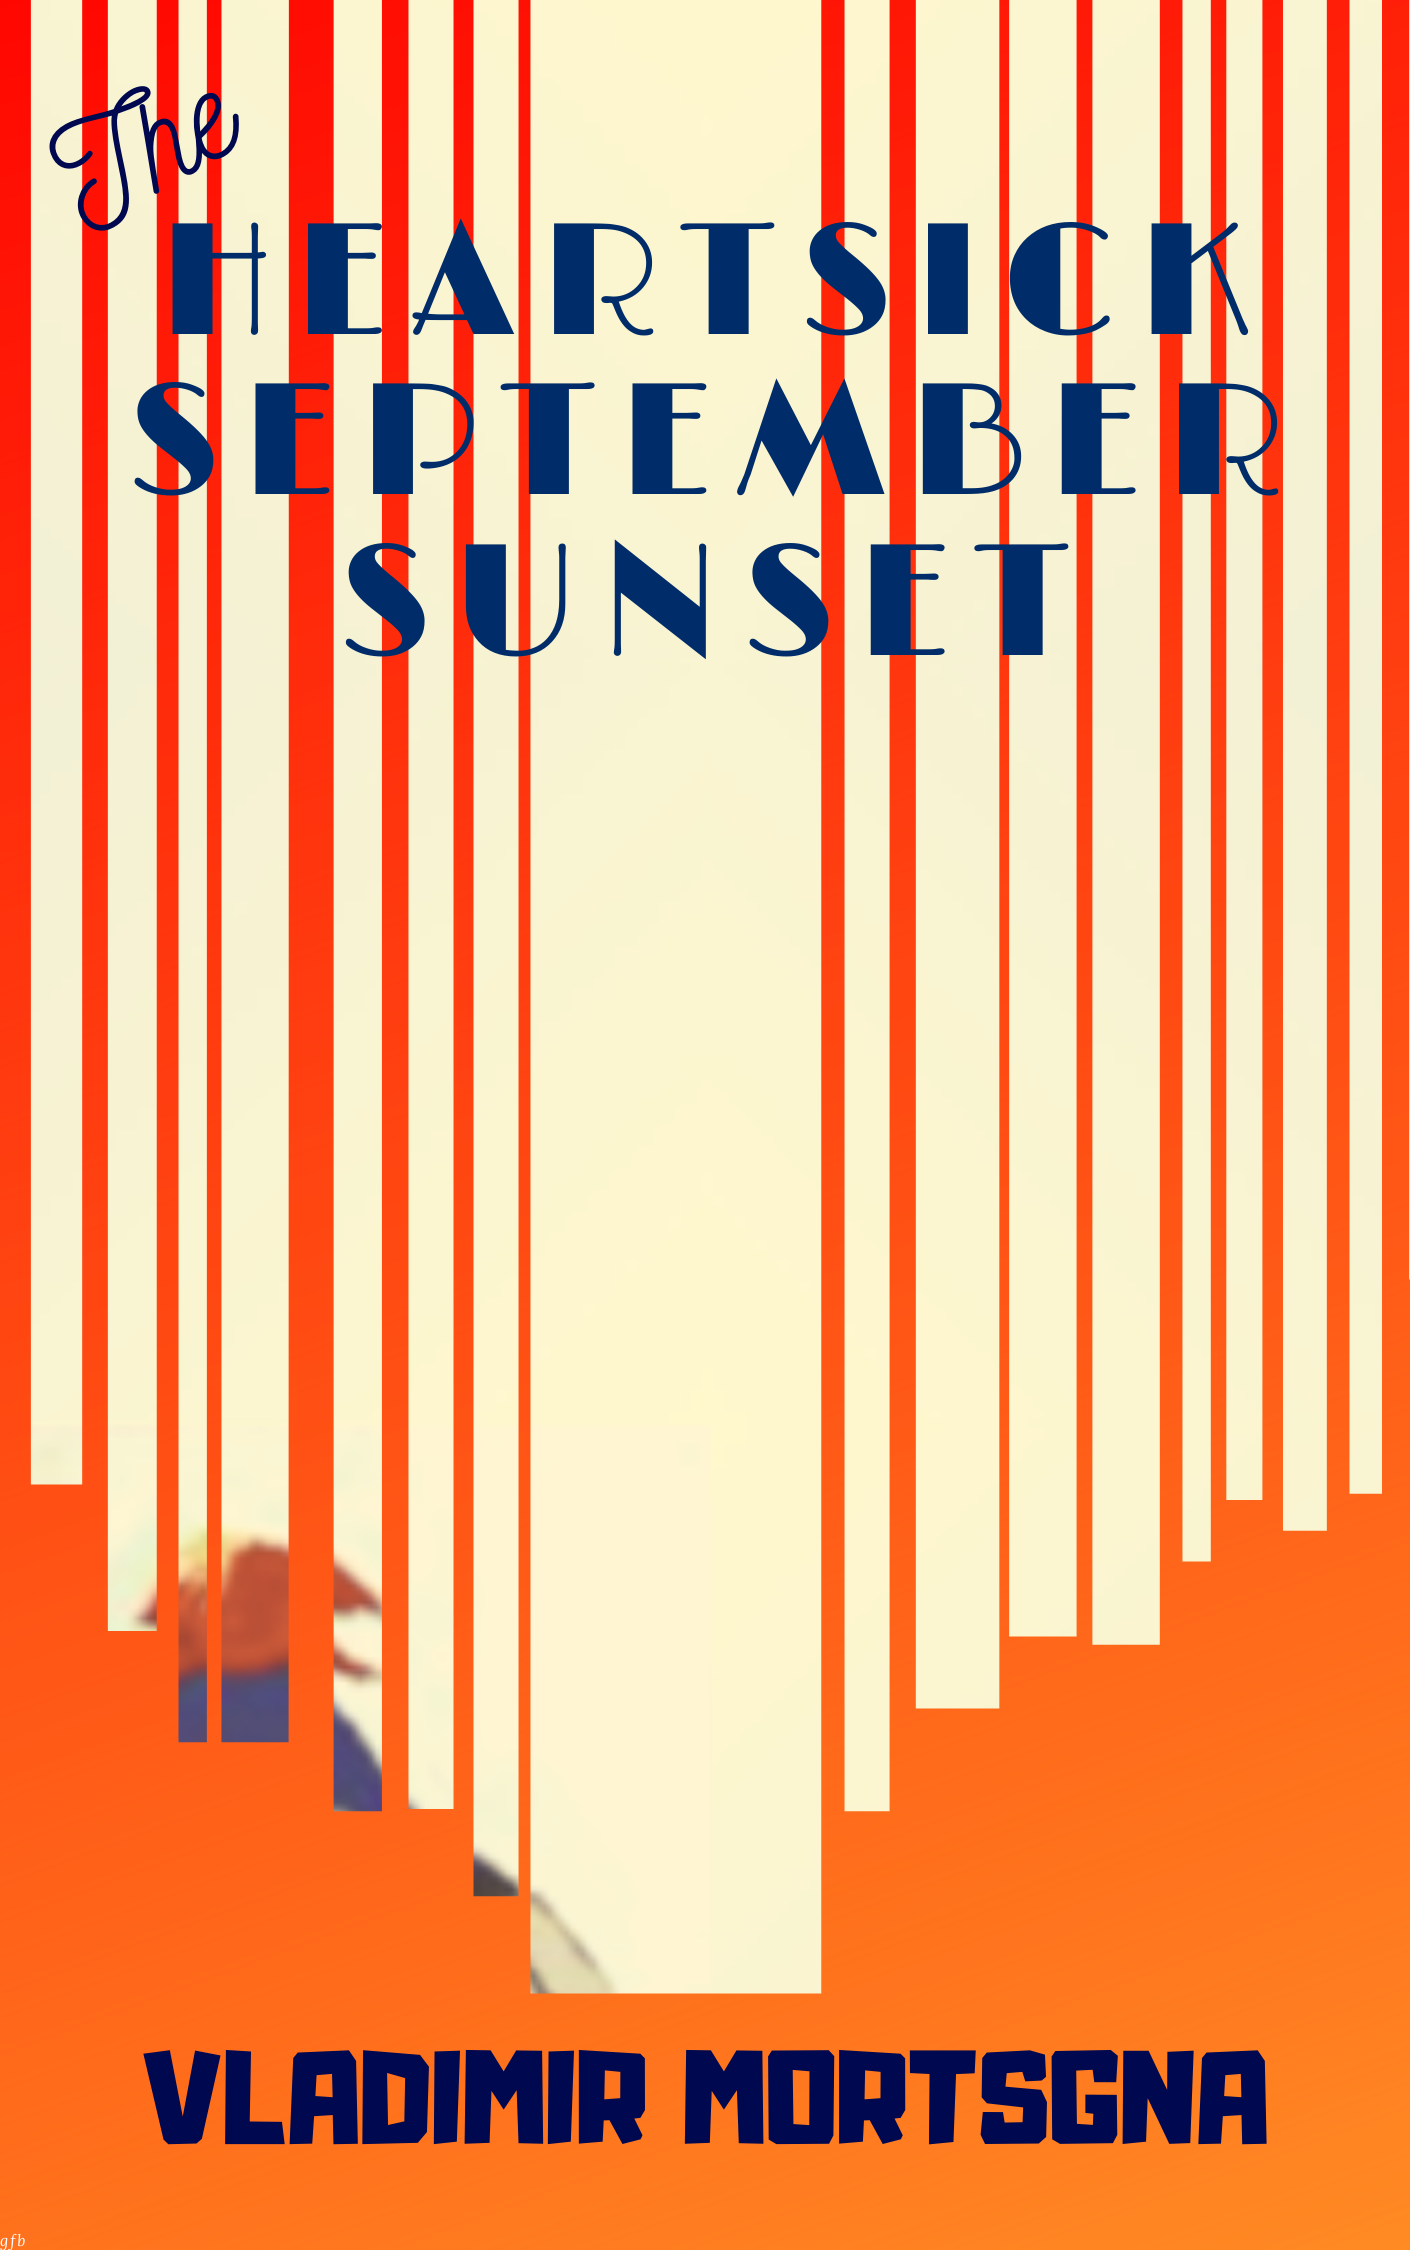 The Heartsick September Sunset